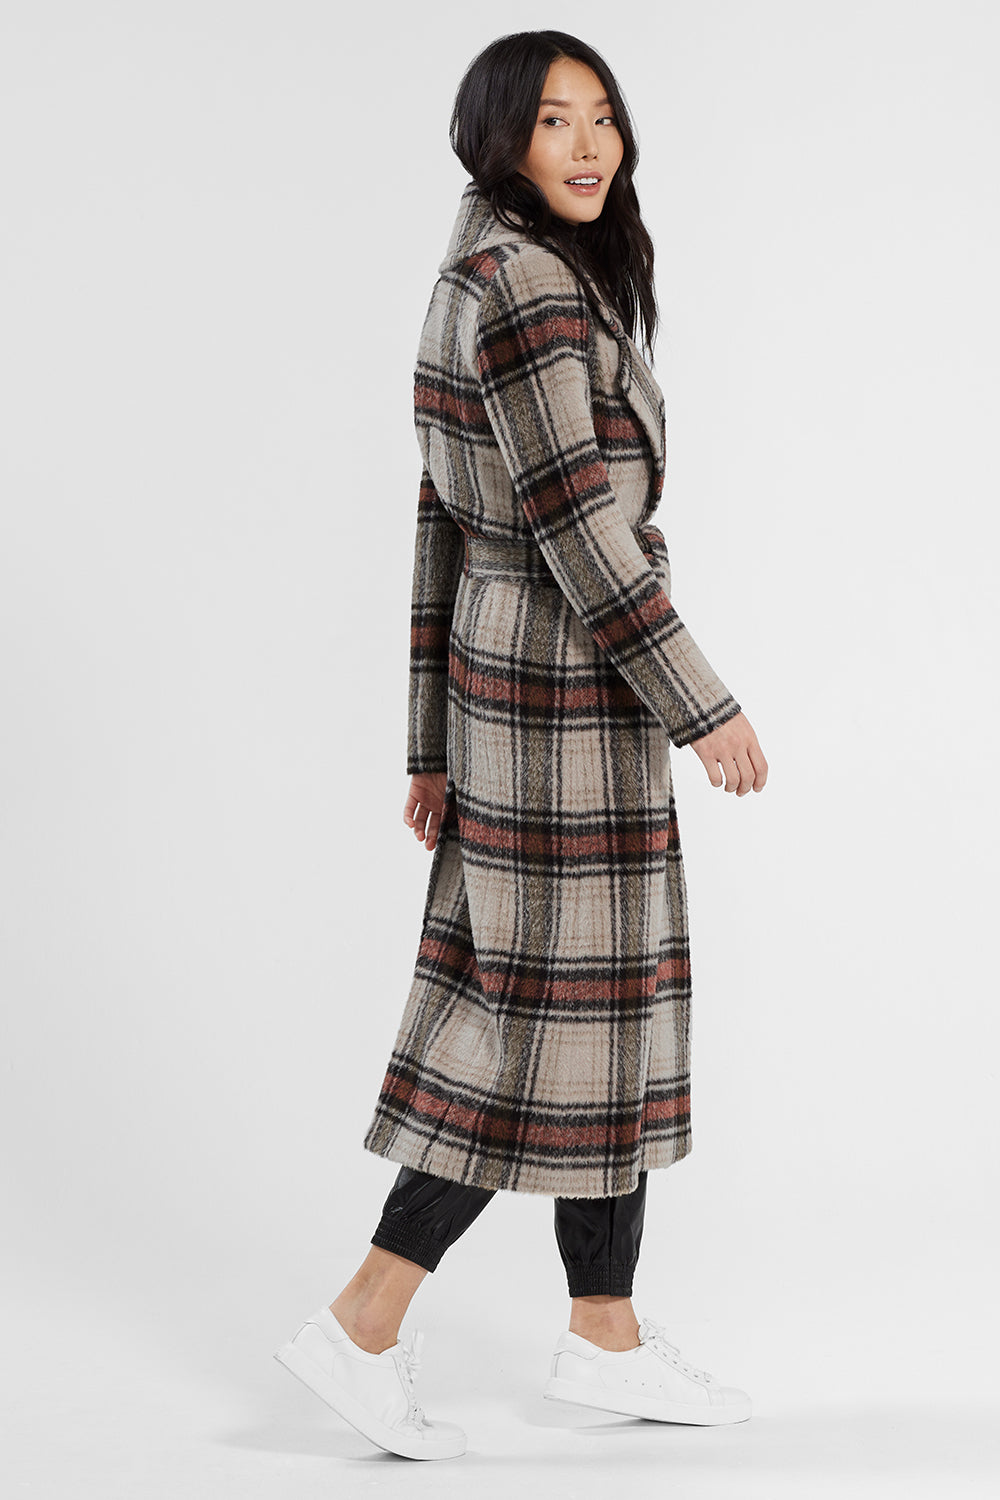 Sentaler Plaid Long Notched Collar Wrap Coat featured in Suri Alpaca and available in Sand Plaid. Seen from side.